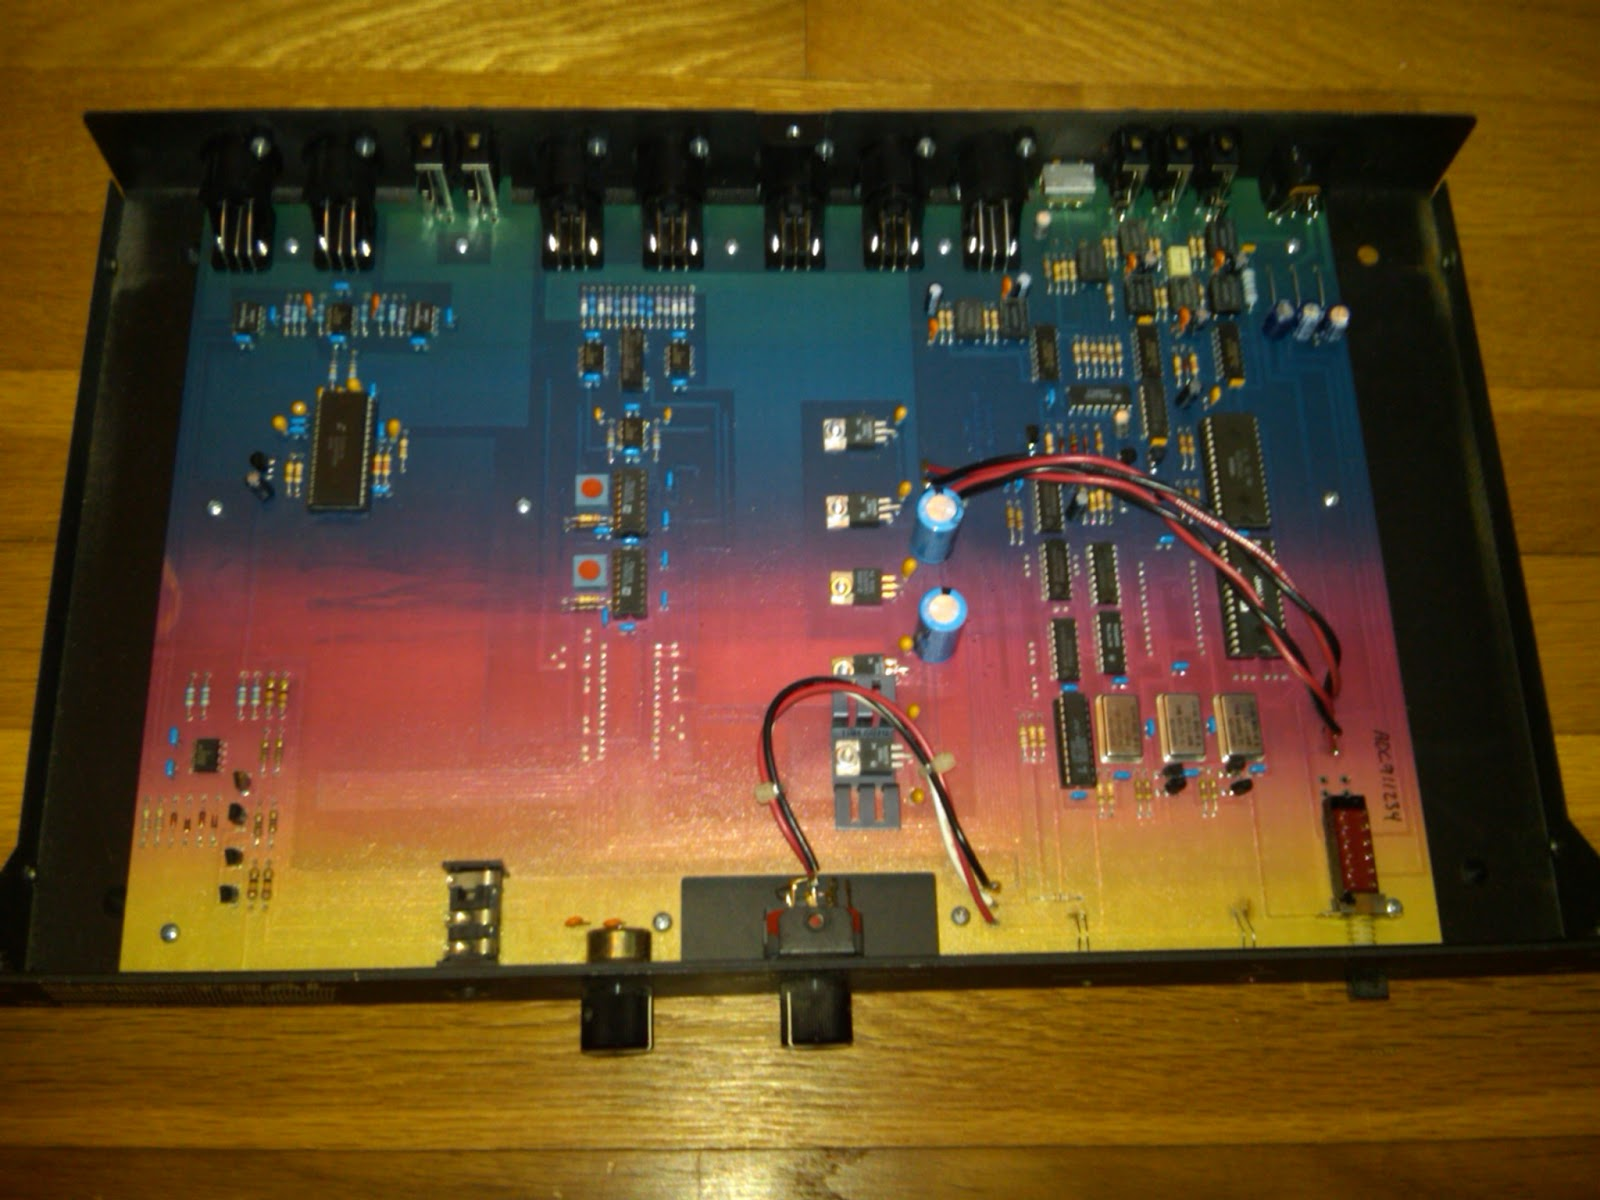 Ee Proto Example Circuit Boards Fiberglass Board The Pcb Inside A Spectral Synthesis Adda2218 An 18 Bit Analog To Digital Audio Converter Which Uses Colored Fr4 Color Isnt Just Painted On